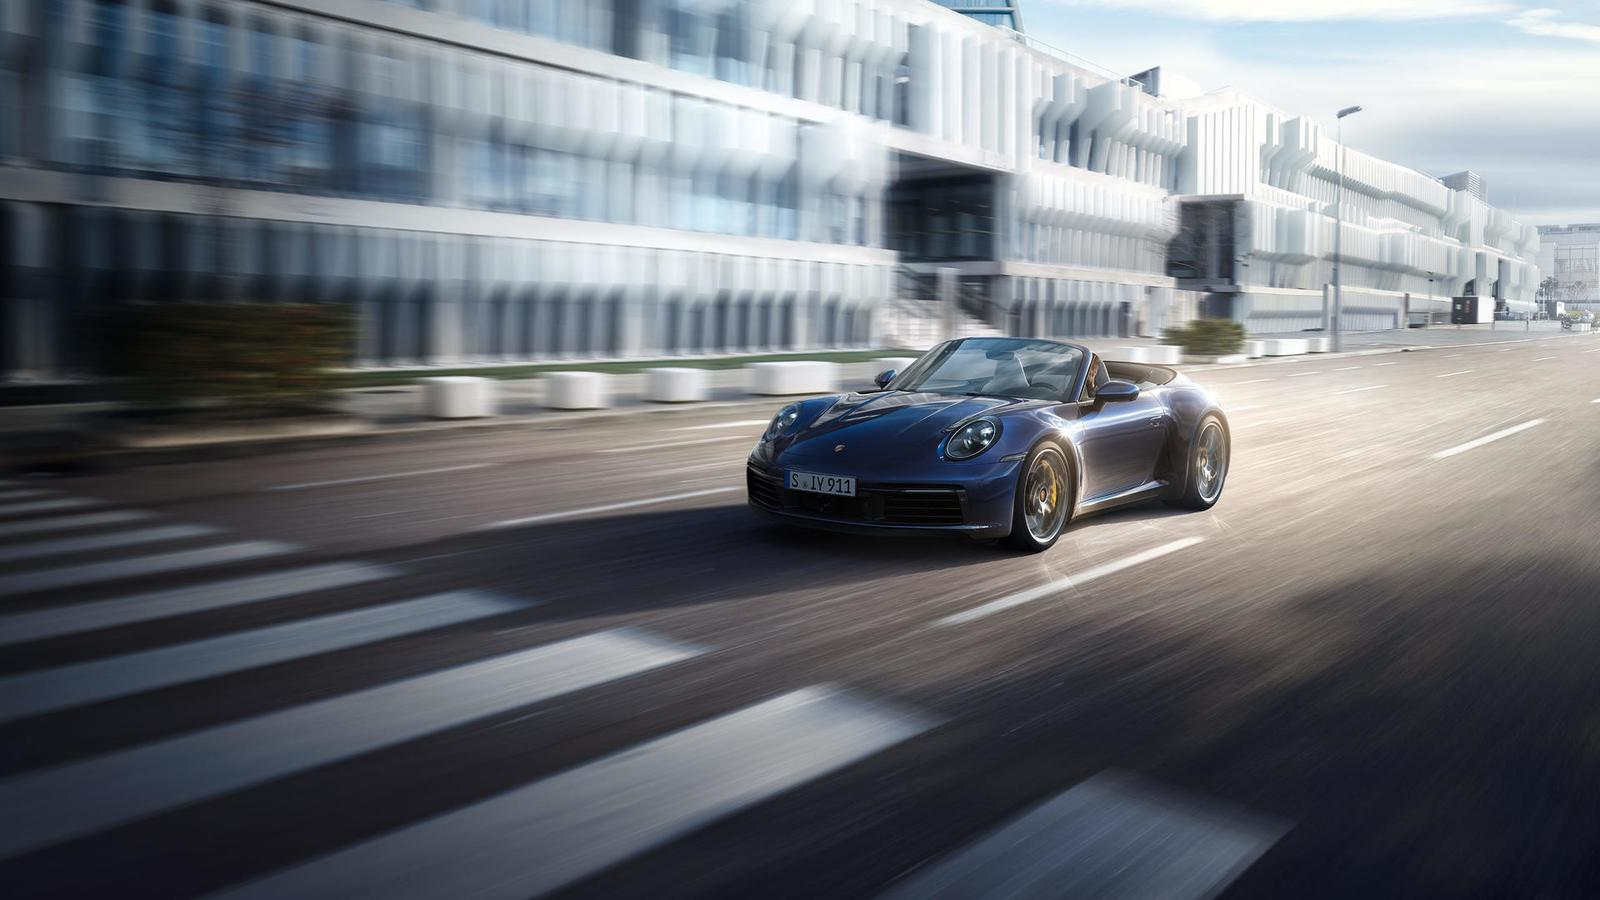 Wallpaper Of The Day 2020 Porsche 911 Cabriolet Top Speed